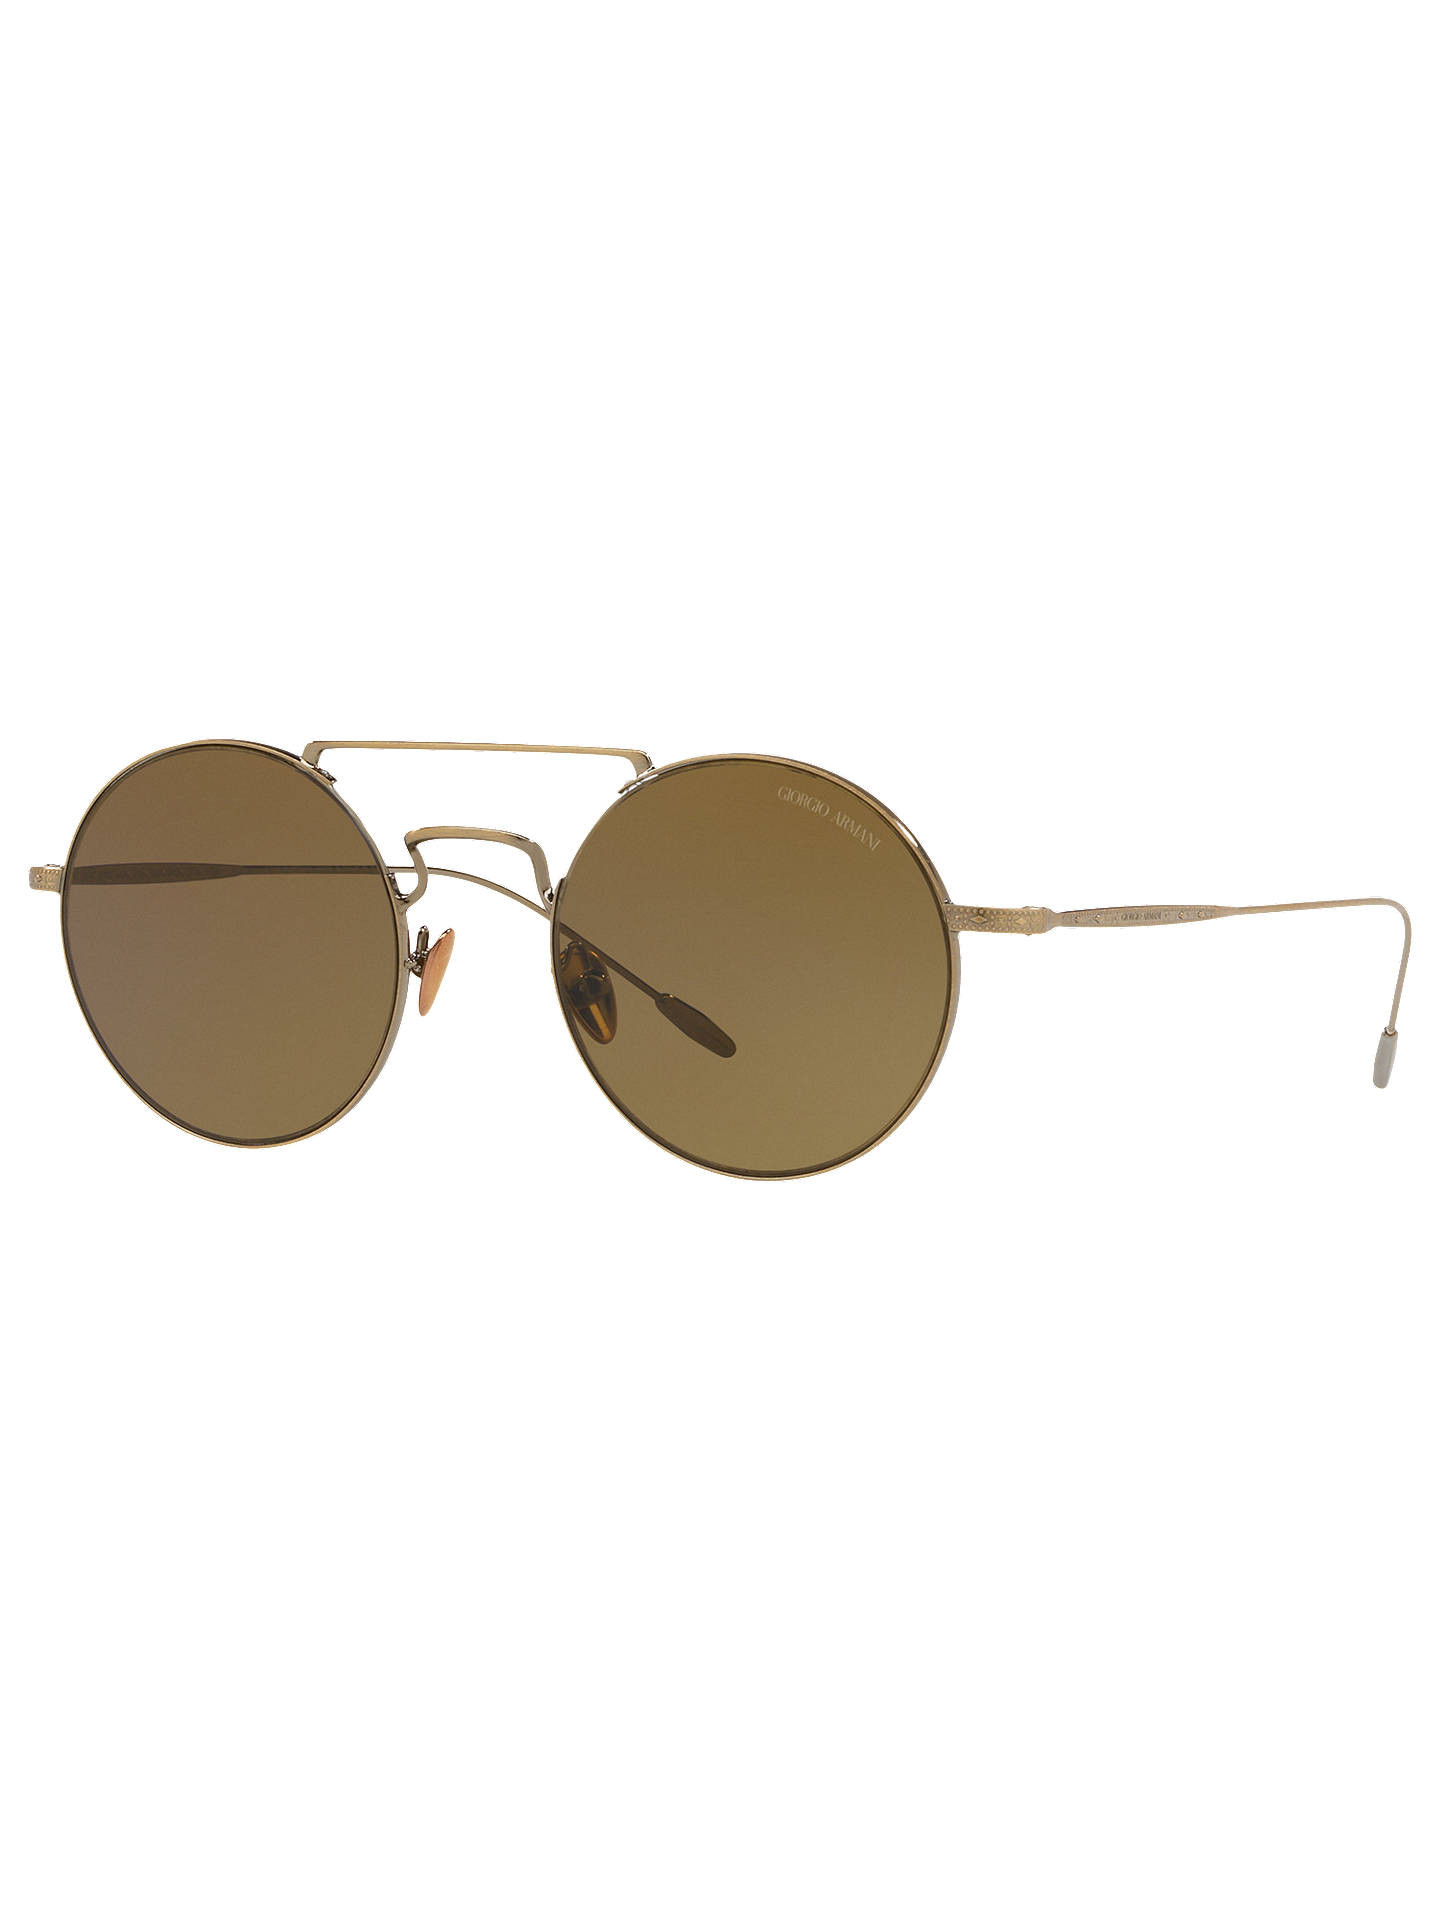 0ed77d84 Giorgio Armani AR6072 Men's Frames of Life Round Sunglasses, Gold/Brown